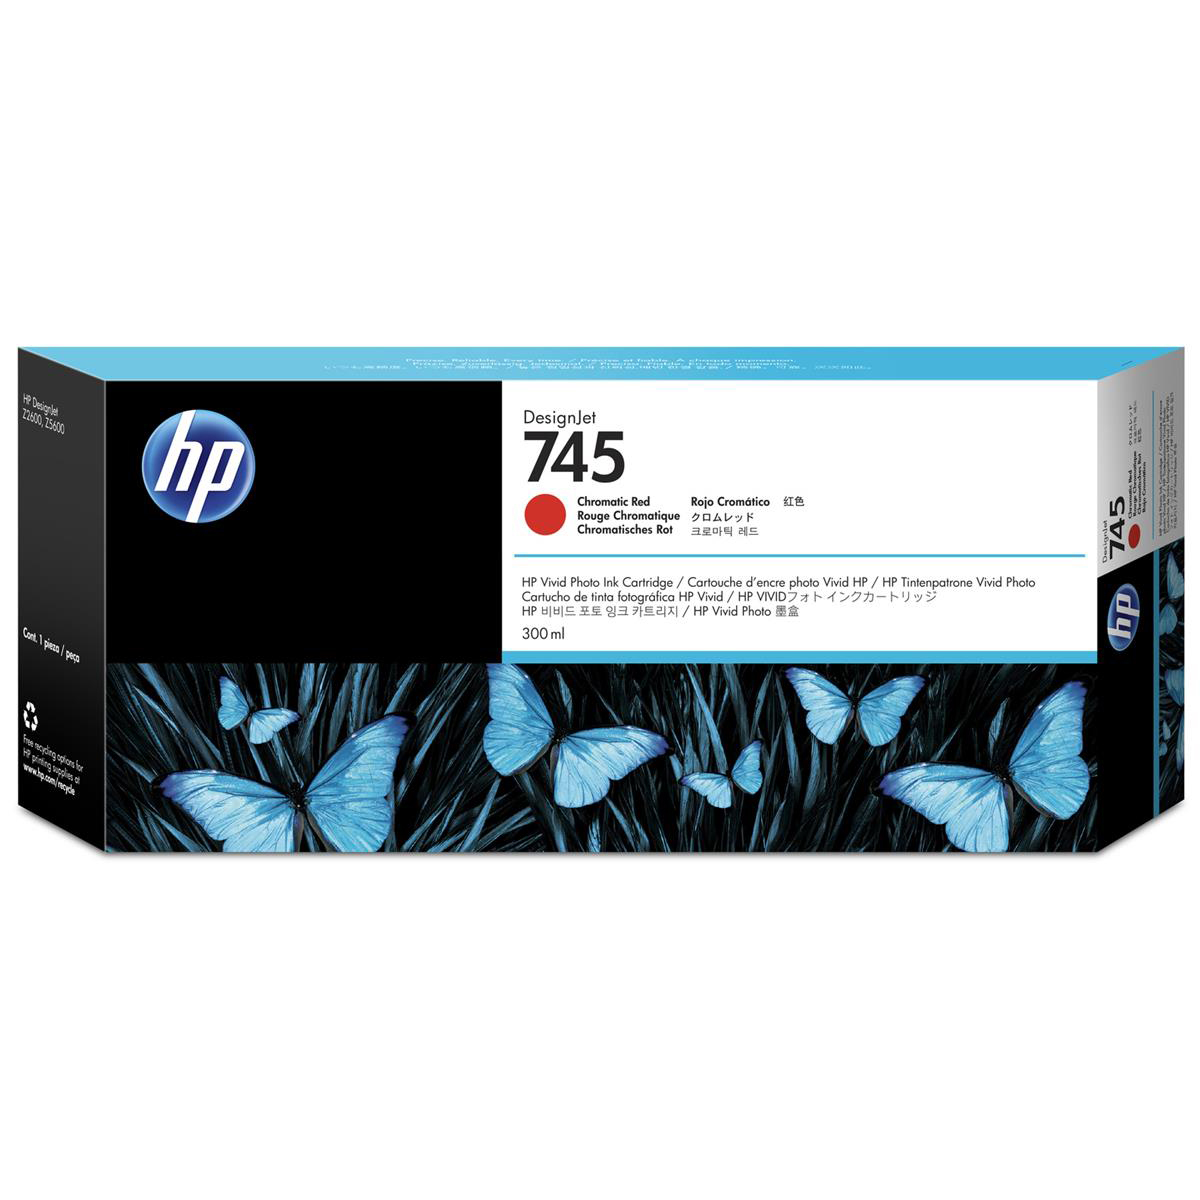 HP 745 300ml DesignJet Chromatic Red Ink Cartridge F9K06A *3 to 5 Day Leadtime*